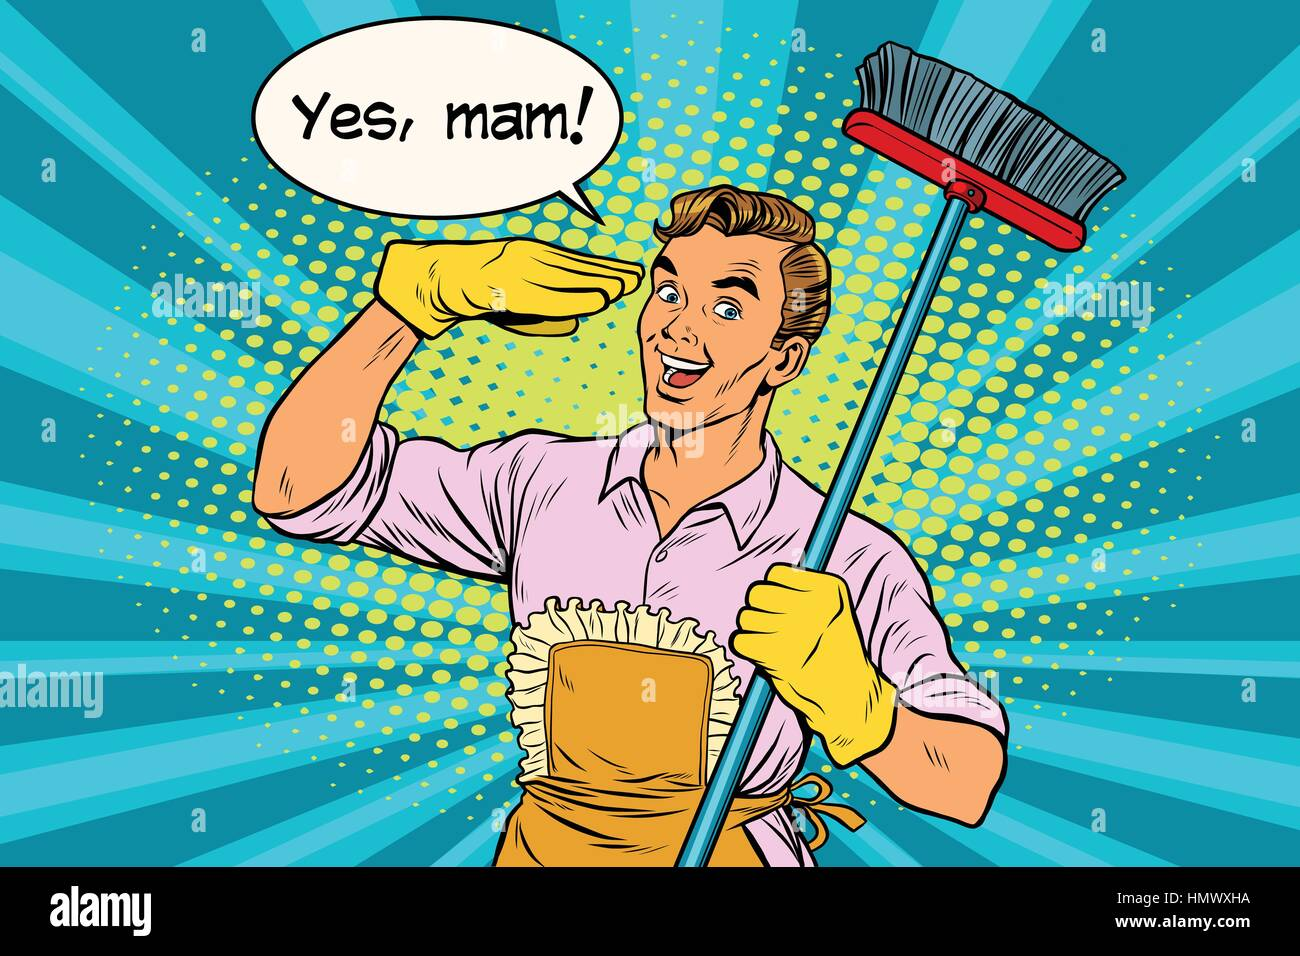 yes mam Husband and cleaning the house - Stock Vector